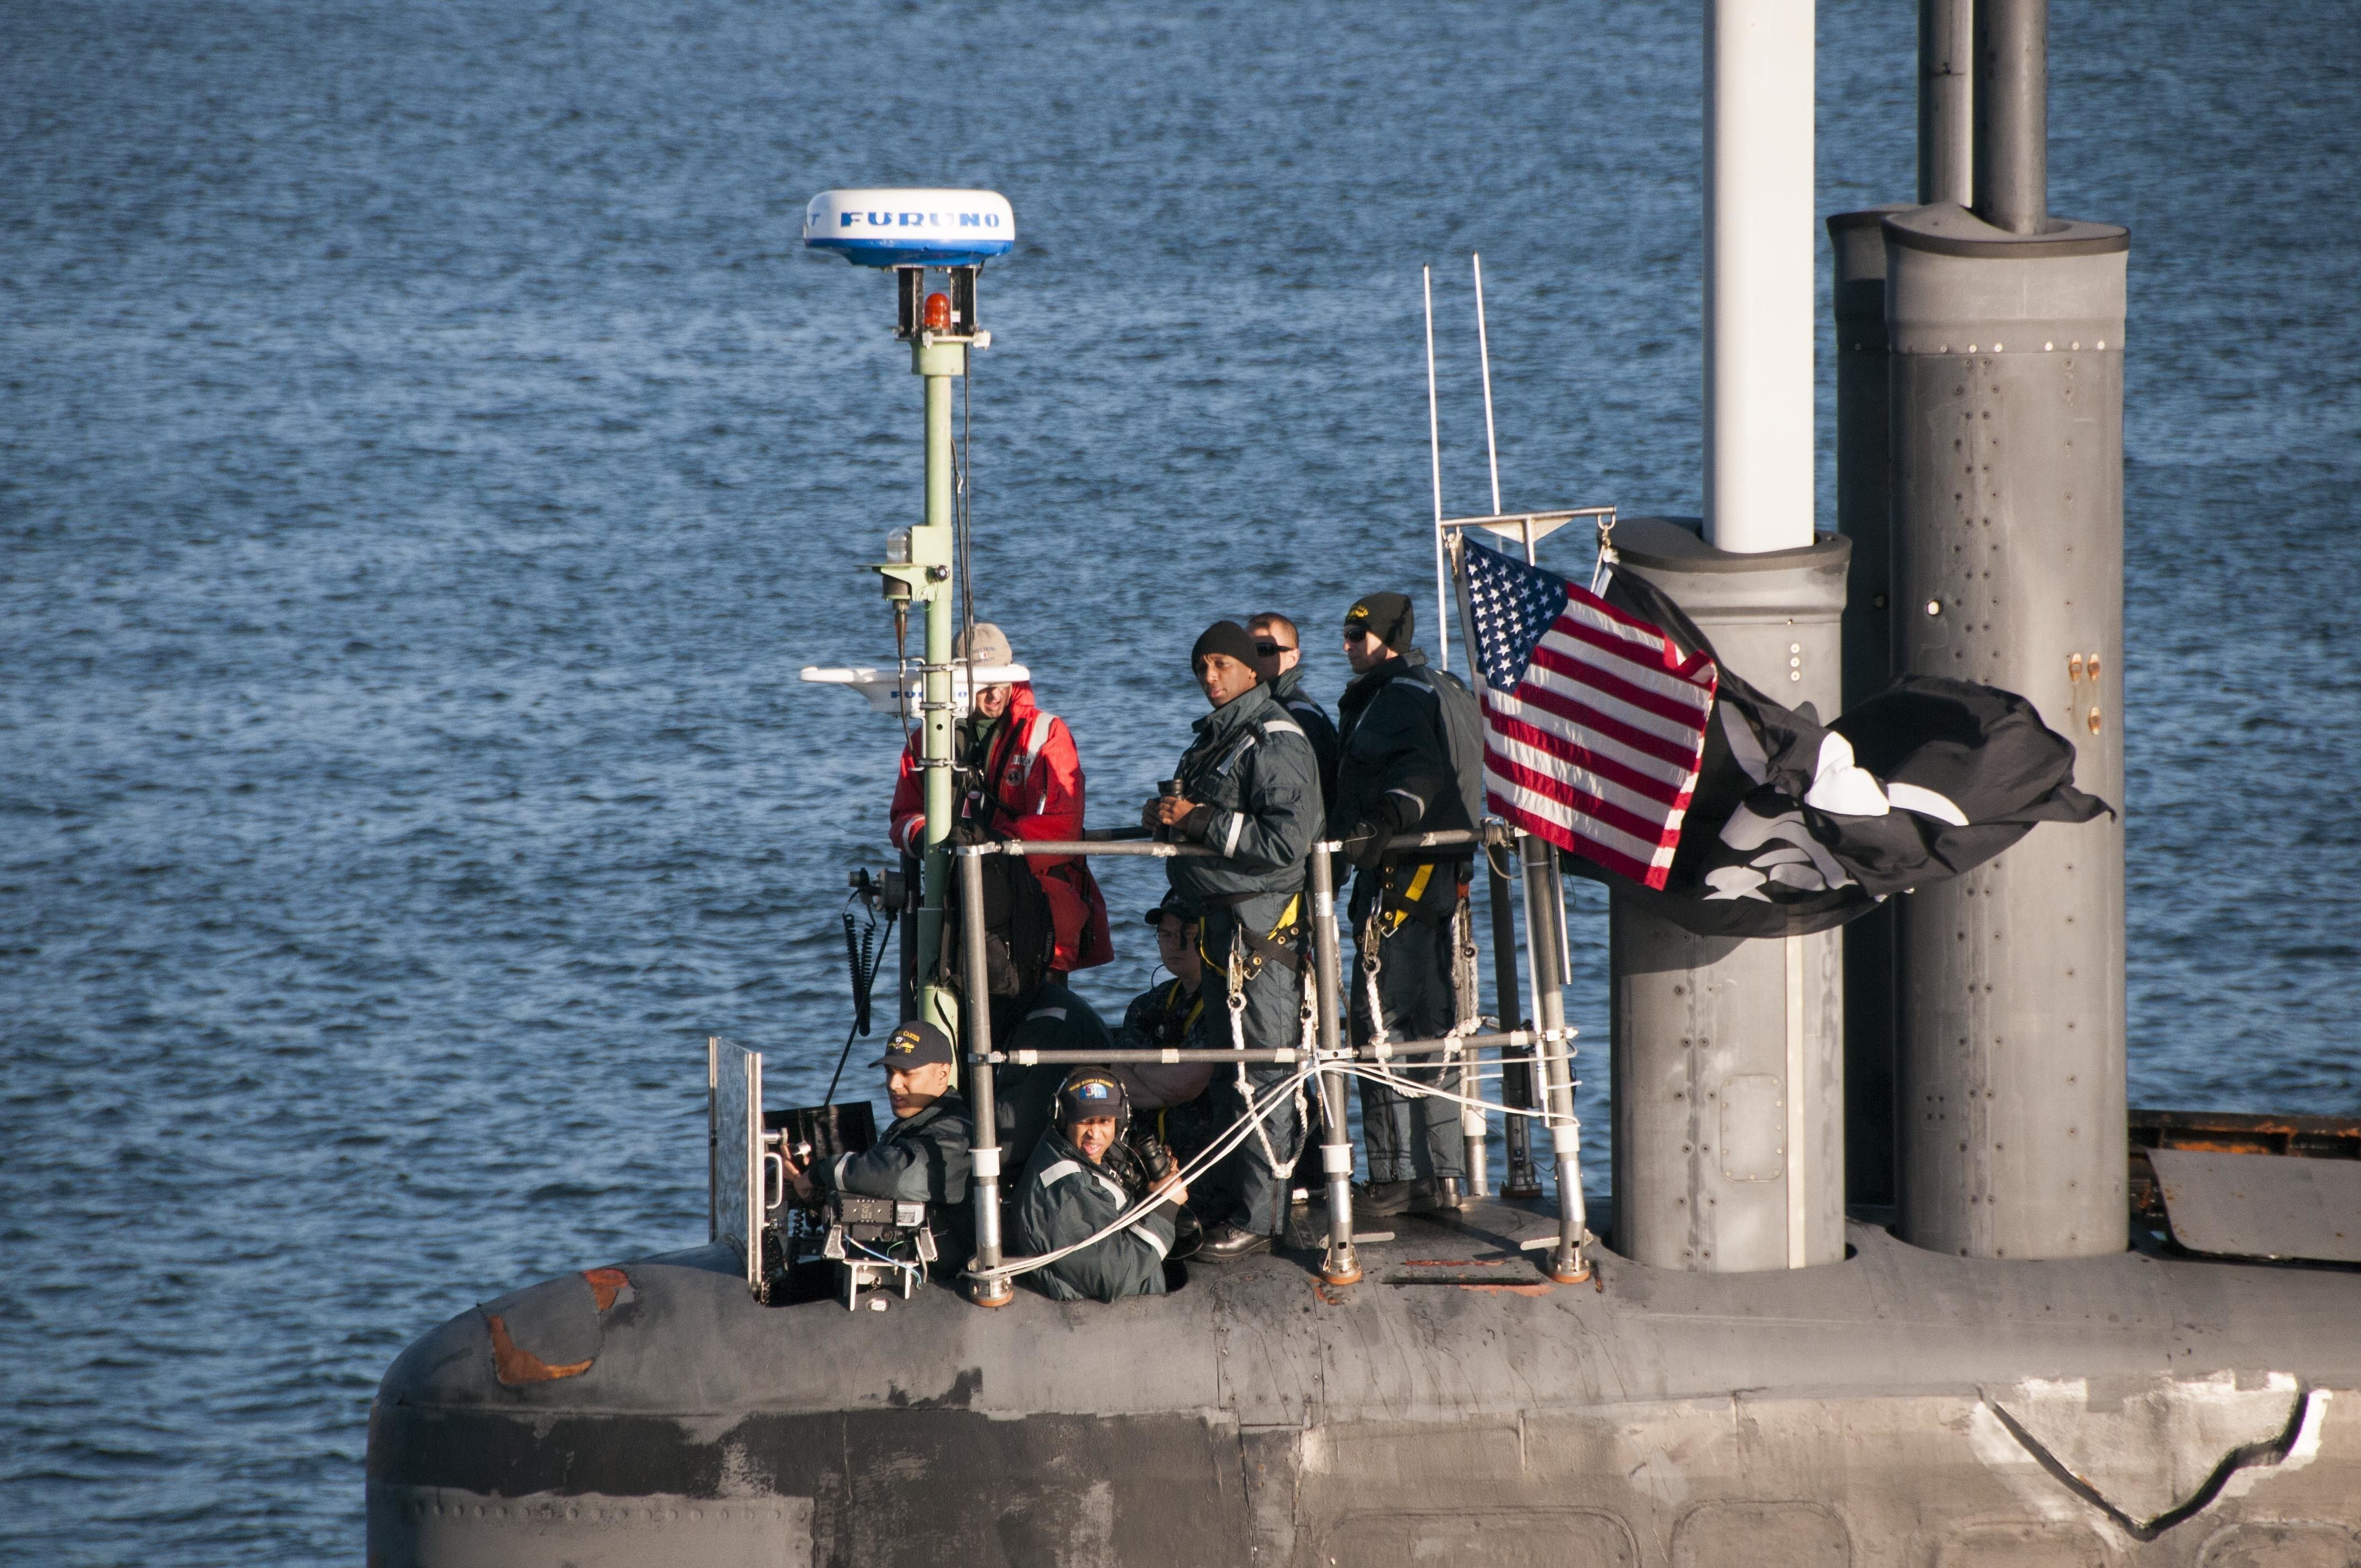 Why a U.S. Navy Spy Submarine Is Flying the Jolly Roger